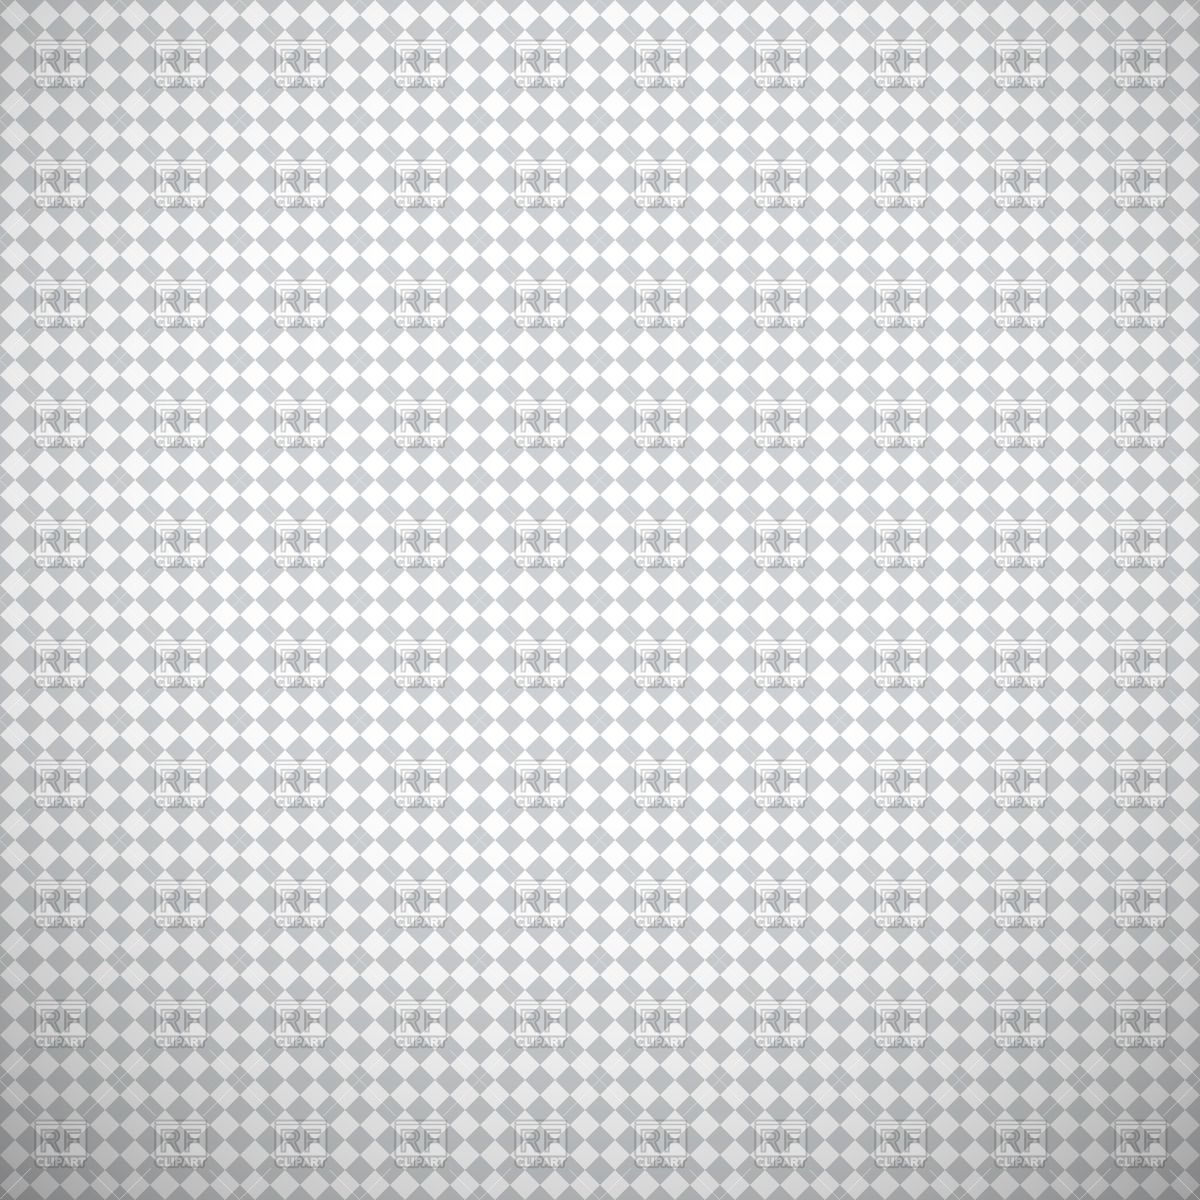 Simple grey background Vector Image #64152.